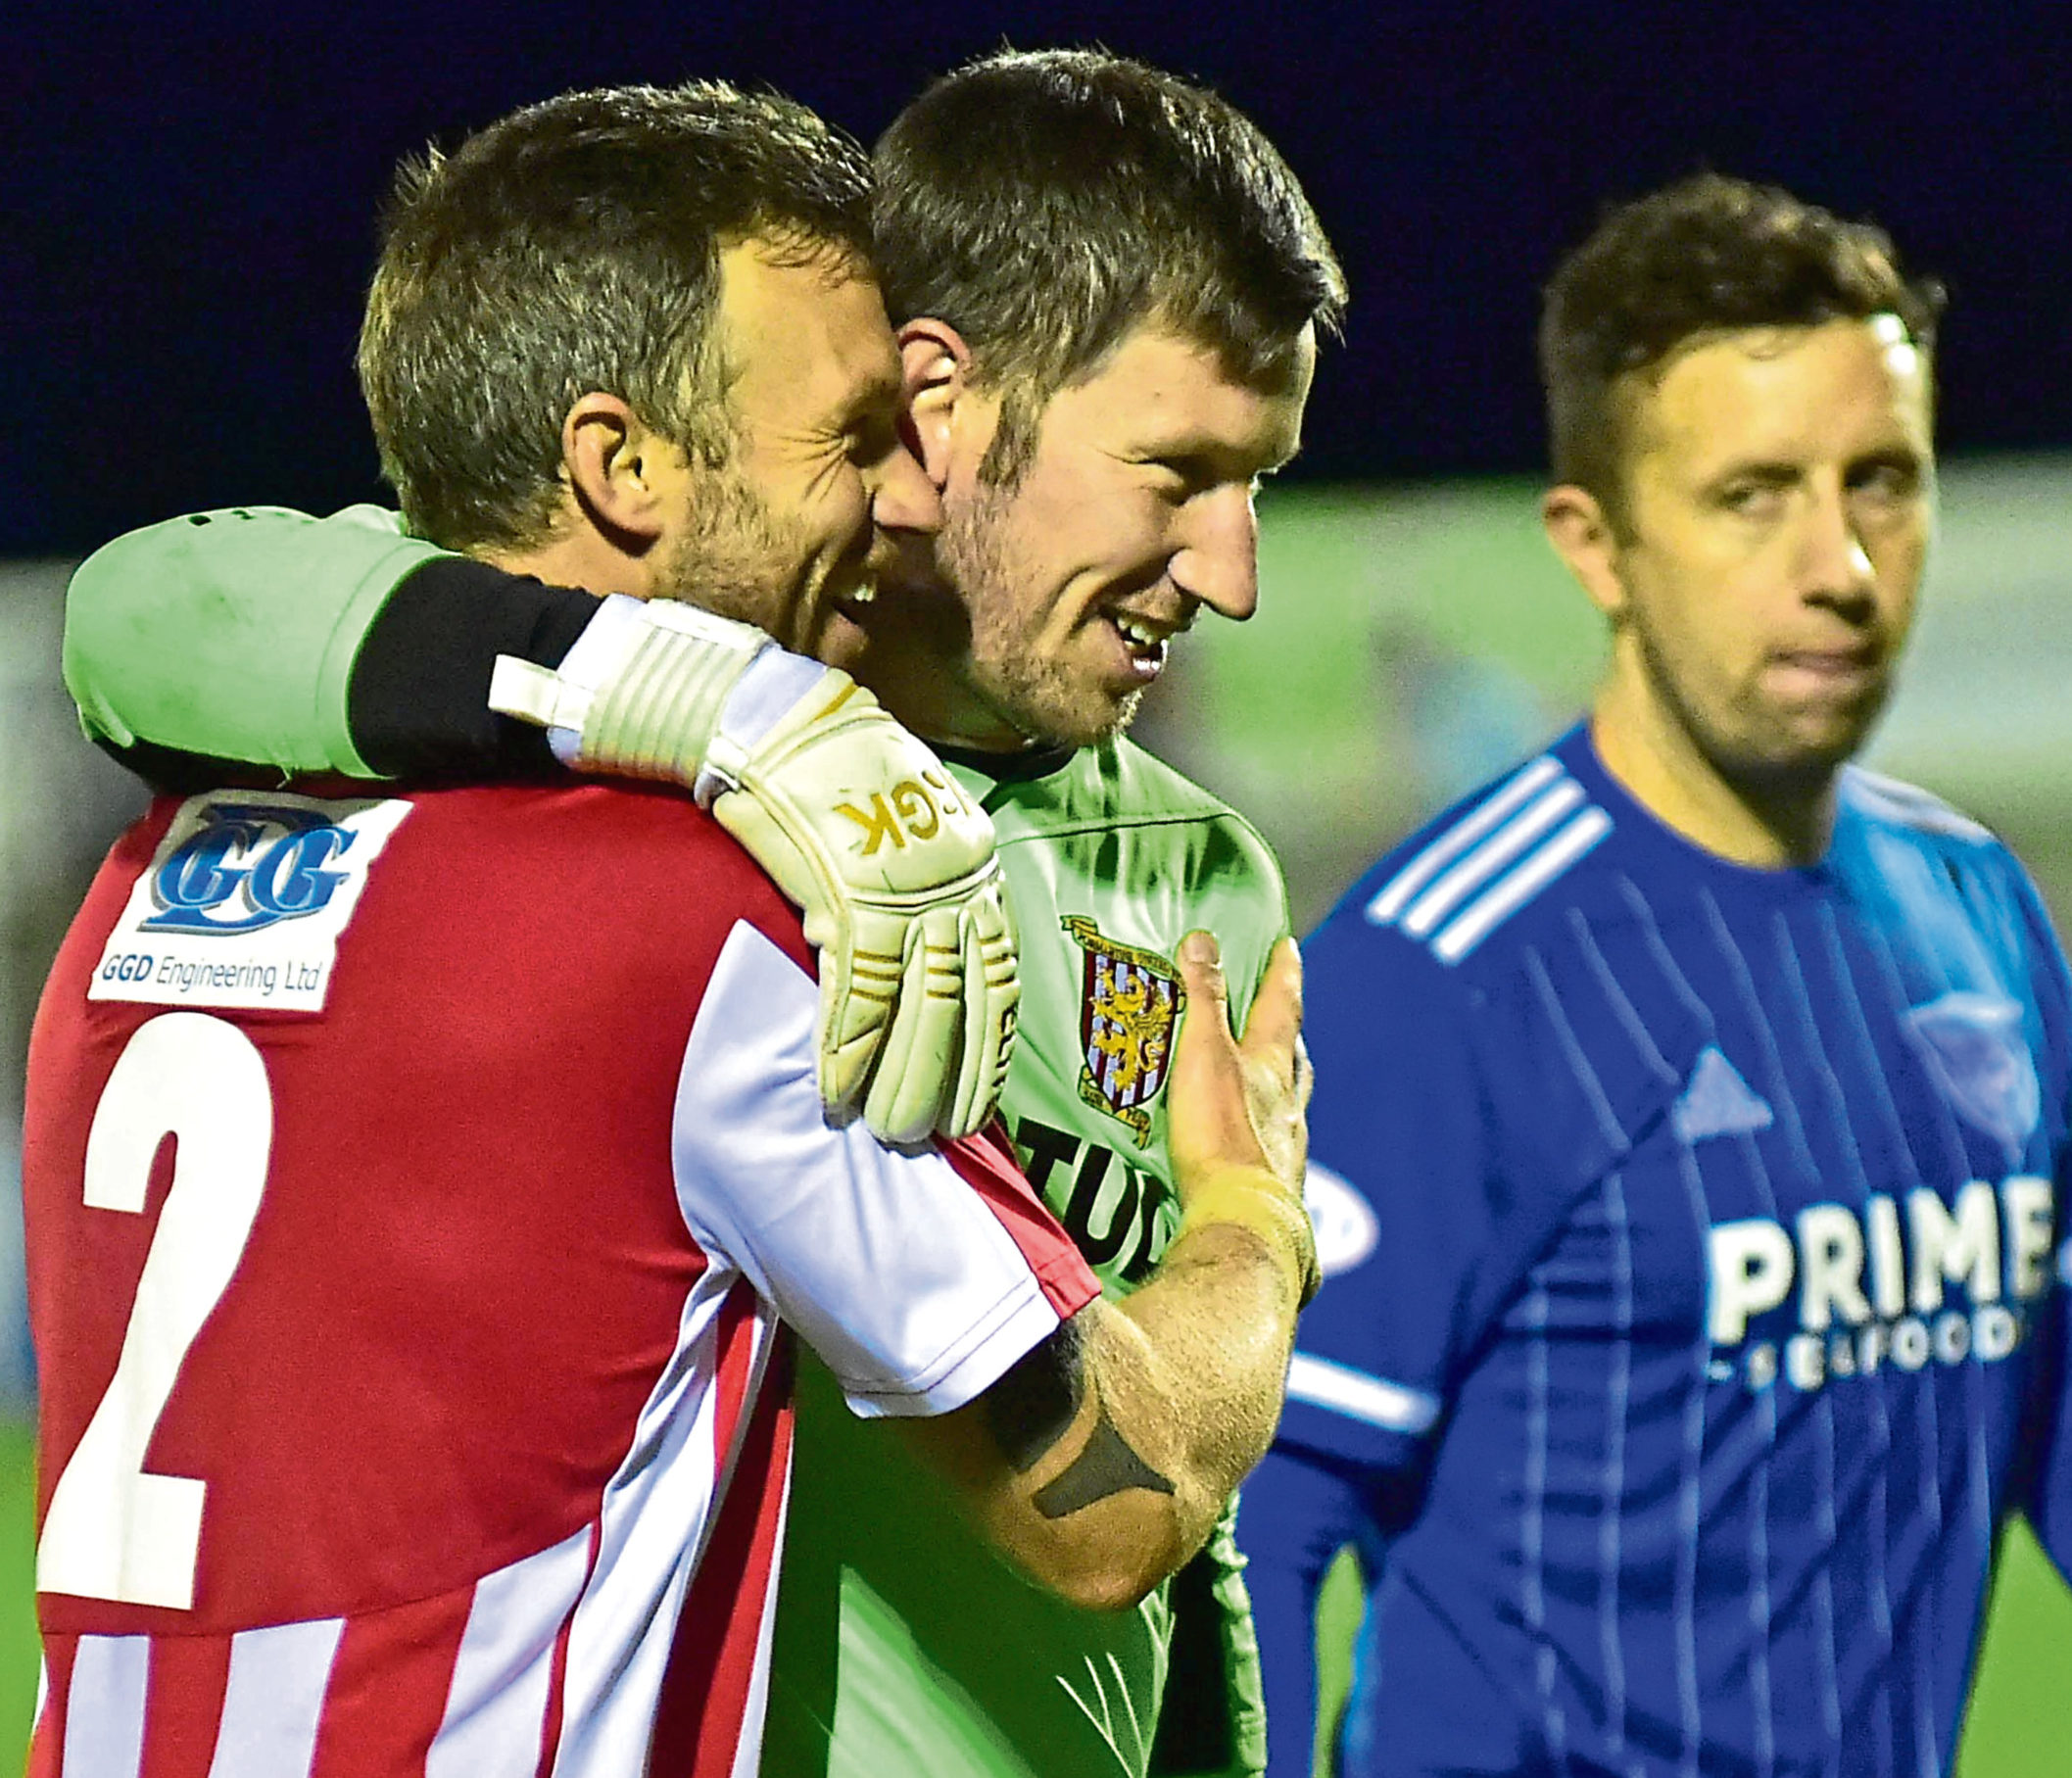 Formartine hero Kevin Main celebrates with Wayne Mackintosh